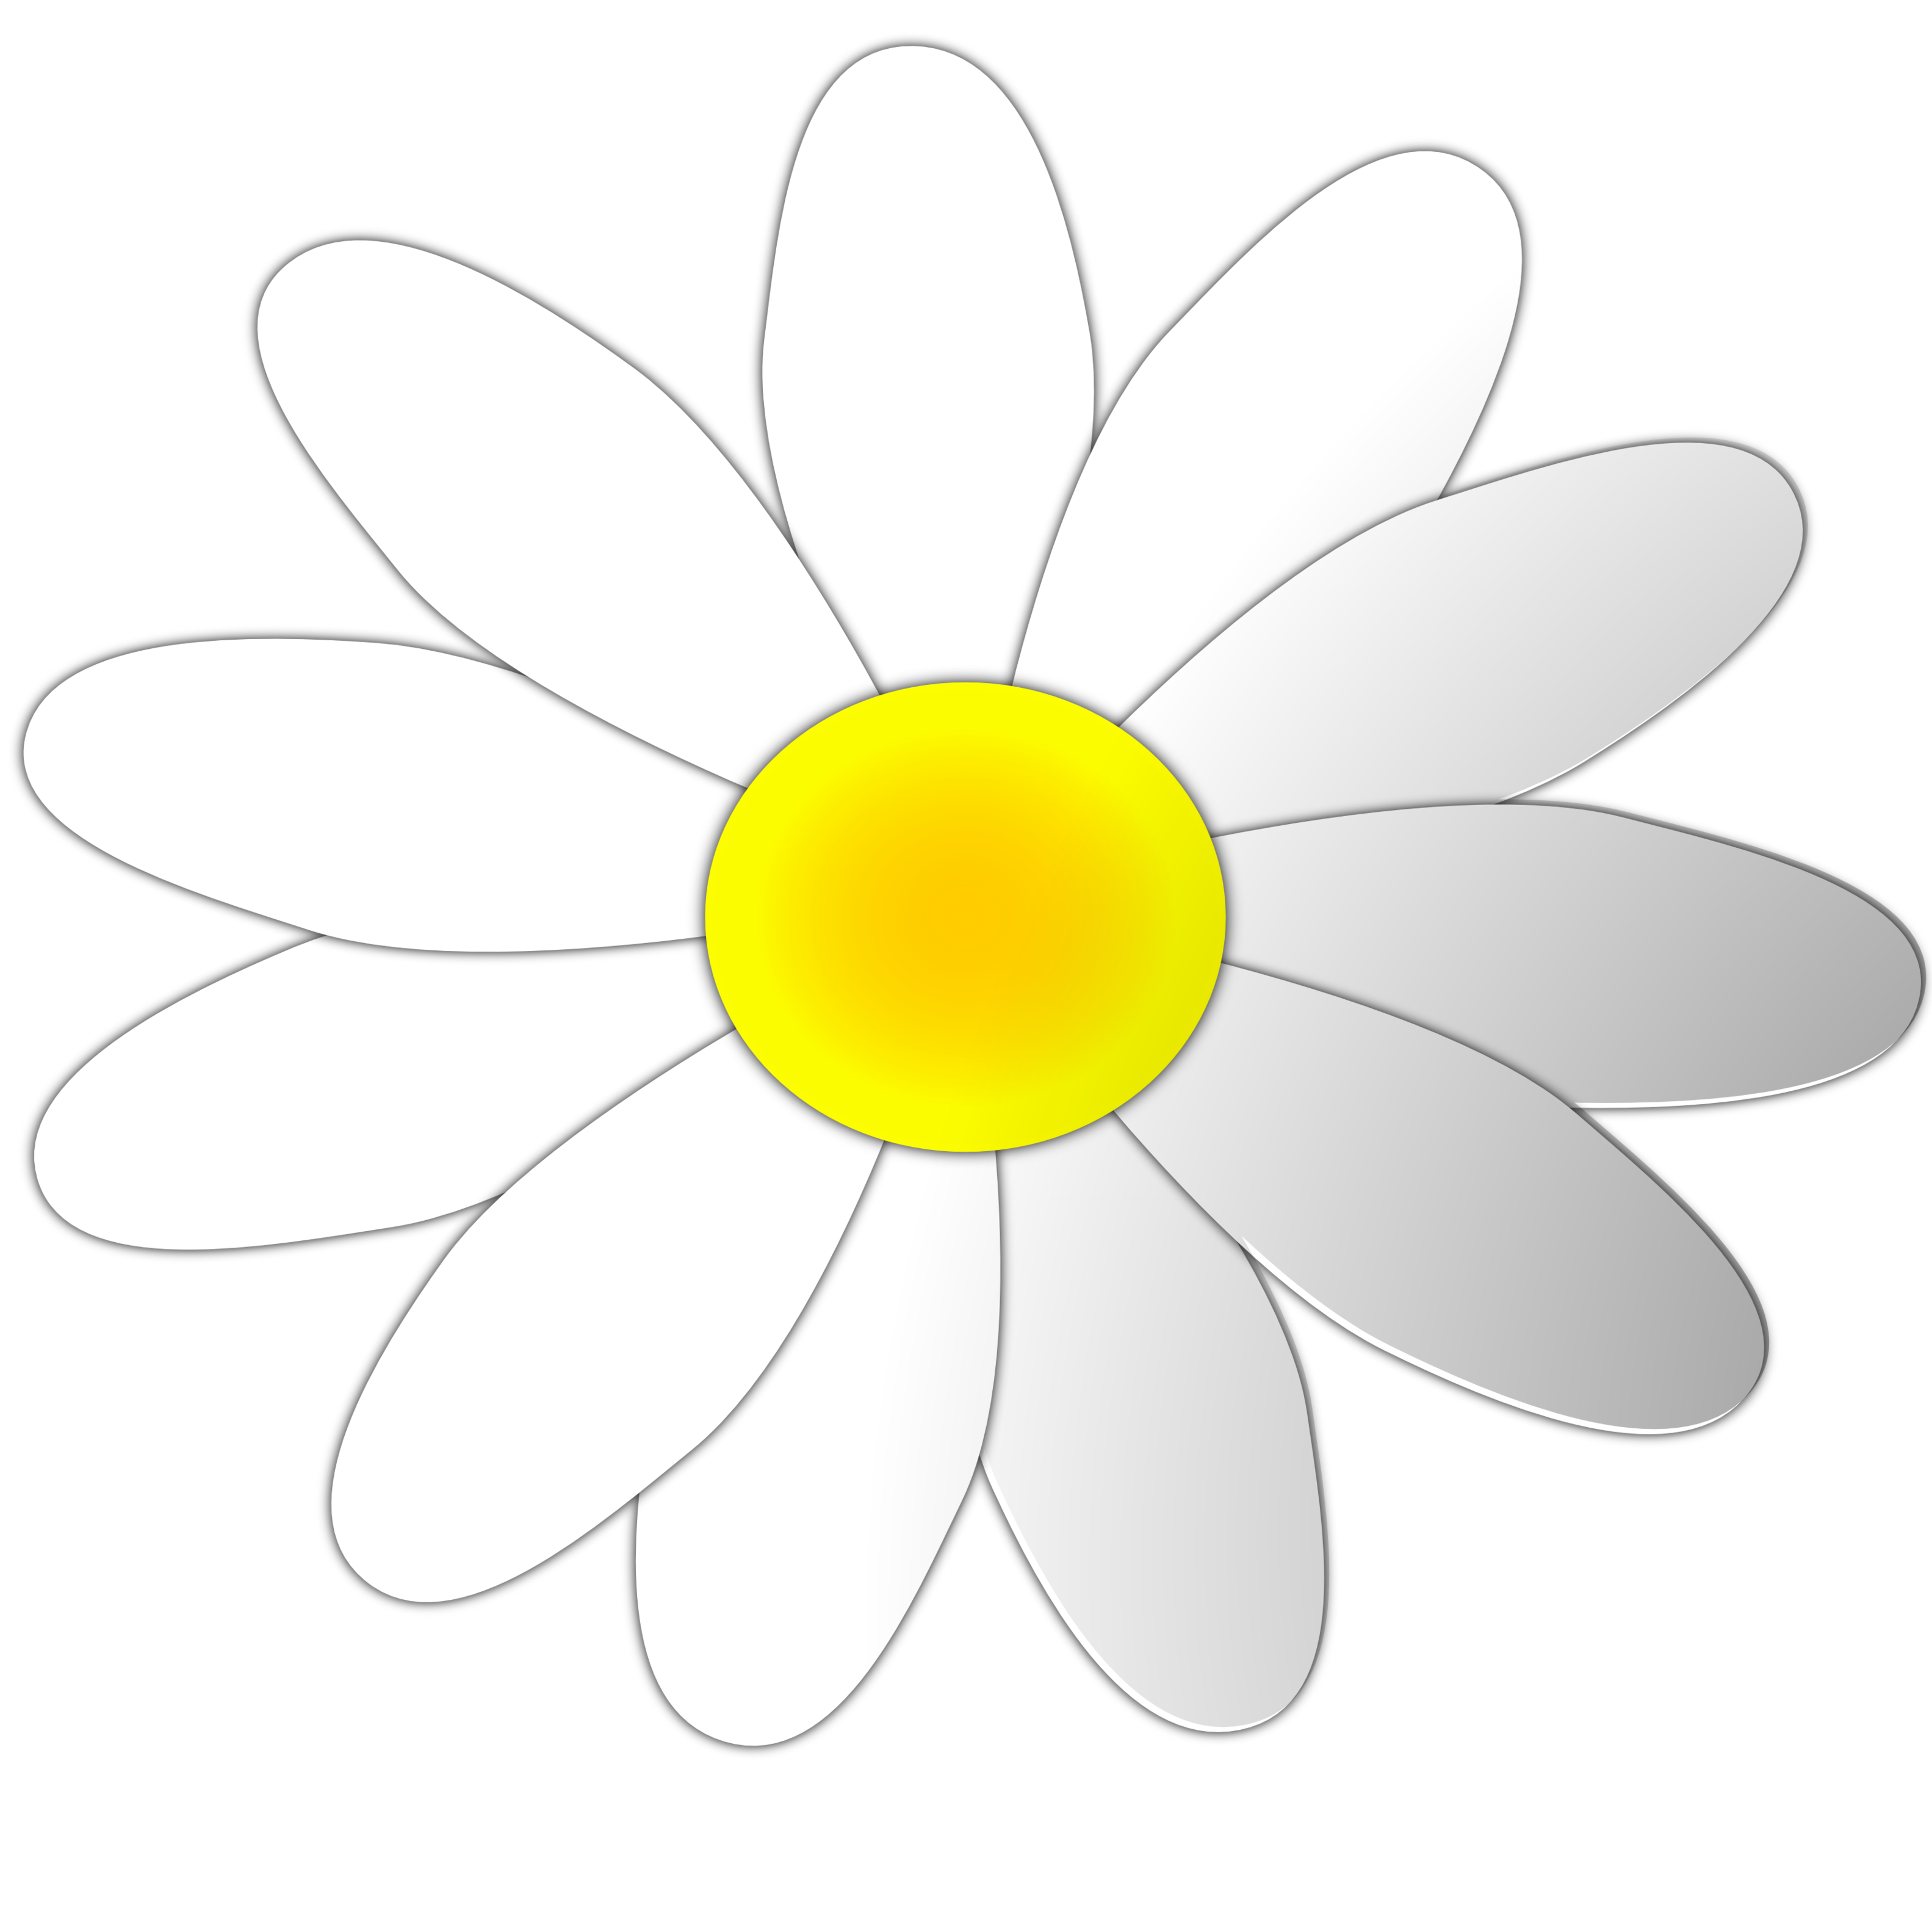 Daisy images clipart png library download Free Daisy Flower Cliparts, Download Free Clip Art, Free ... png library download